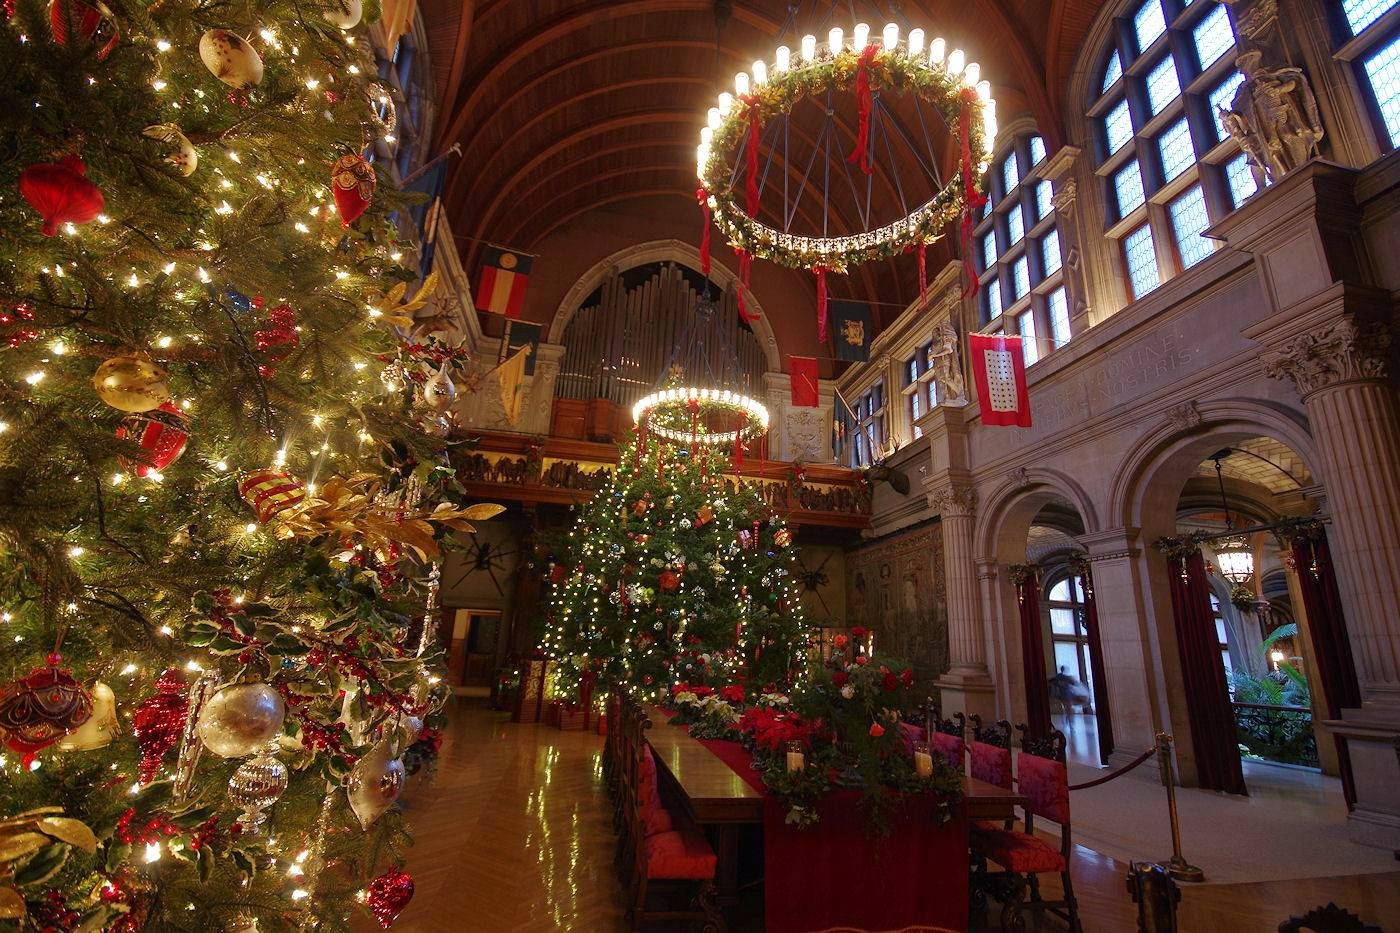 Desktop Wallpaper Fall Foliage 2014 Biltmore Candlelight Upgrades And Discounted Tickets